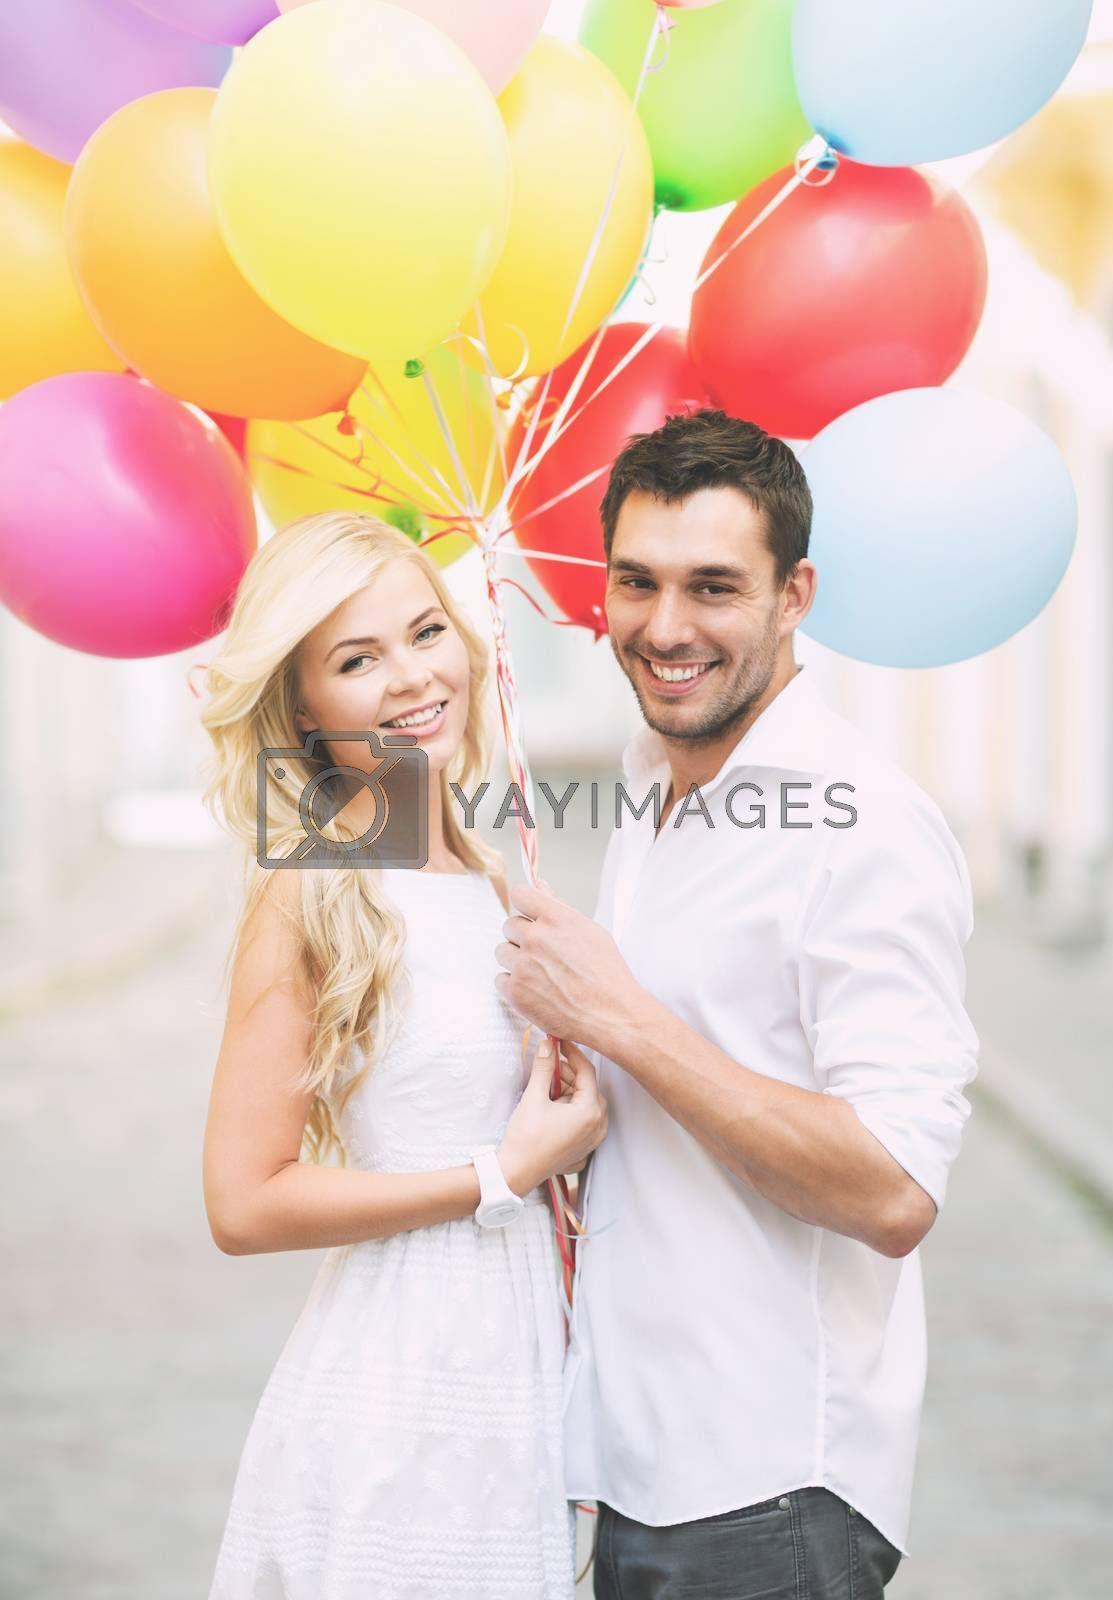 summer holidays, celebration and dating concept - couple with colorful balloons in the city